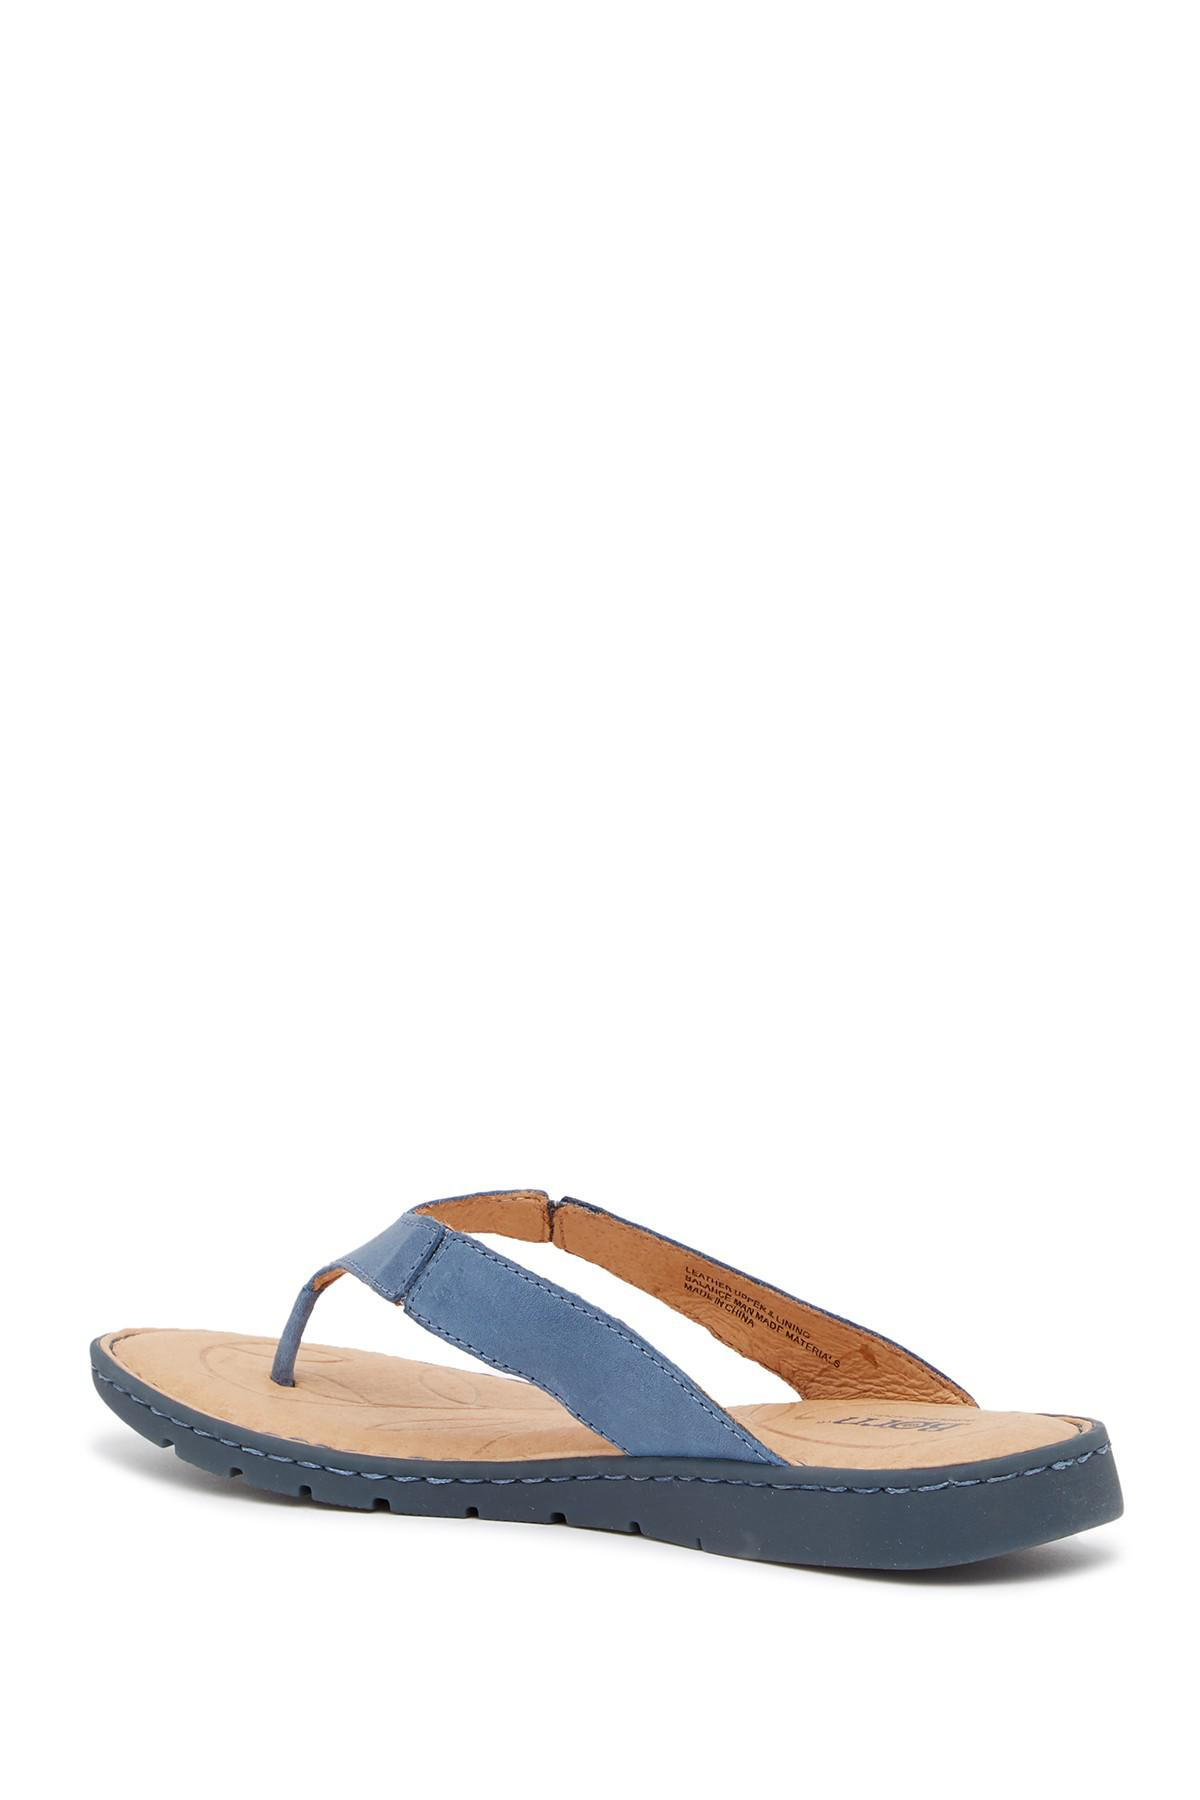 5cfdaaa9f8f5a Lyst - Born Amelie Leather Flip Flop in Blue